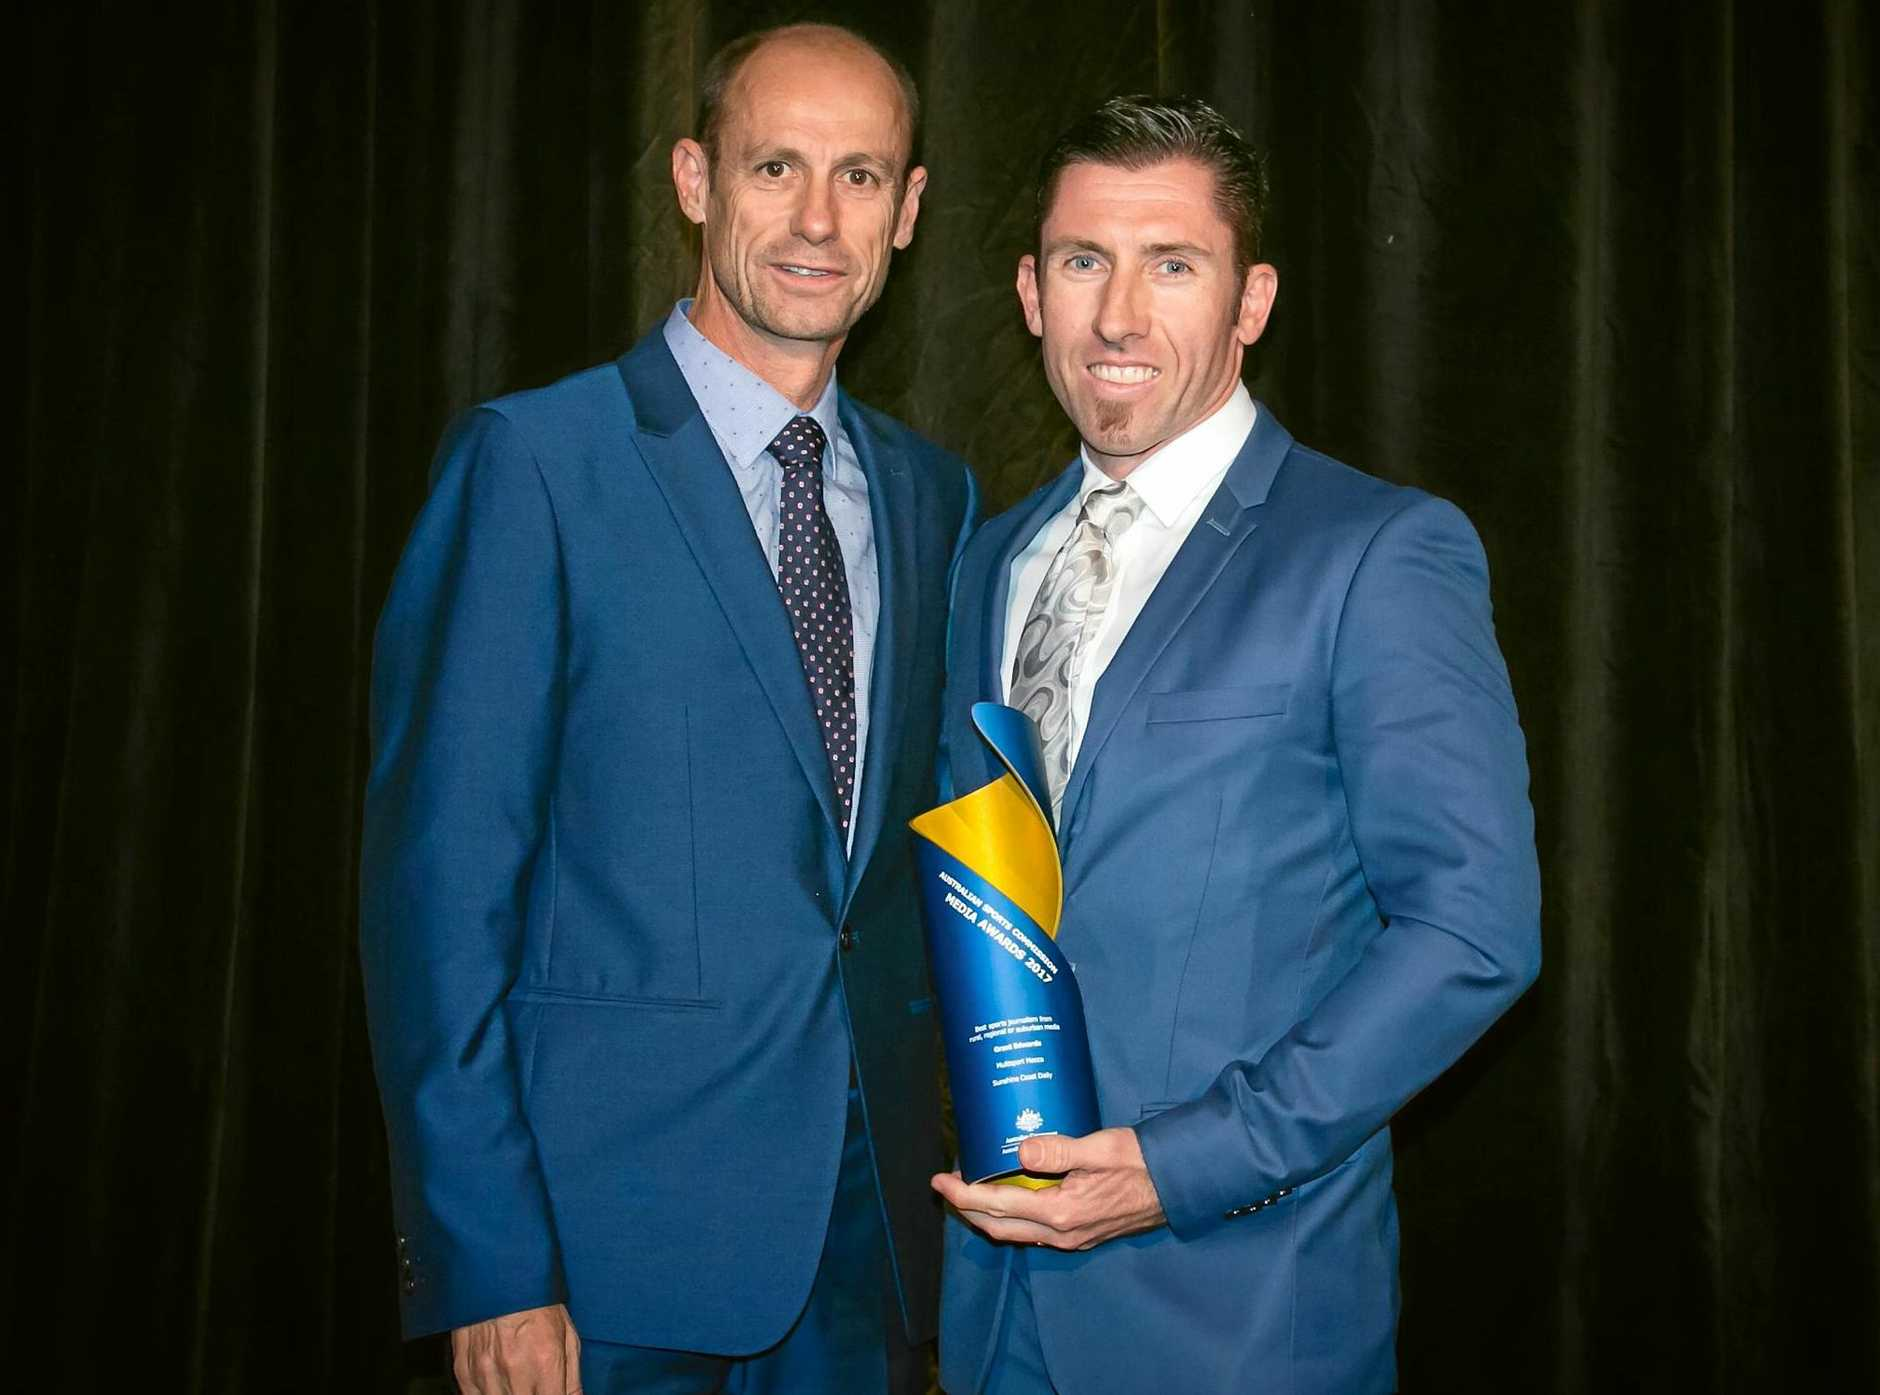 Marathon legend Steve Moneghetti presents Grant Edwards with the award for best sports journalism from rural, regional or suburban media at the Australian Sports Commission Media Awards.